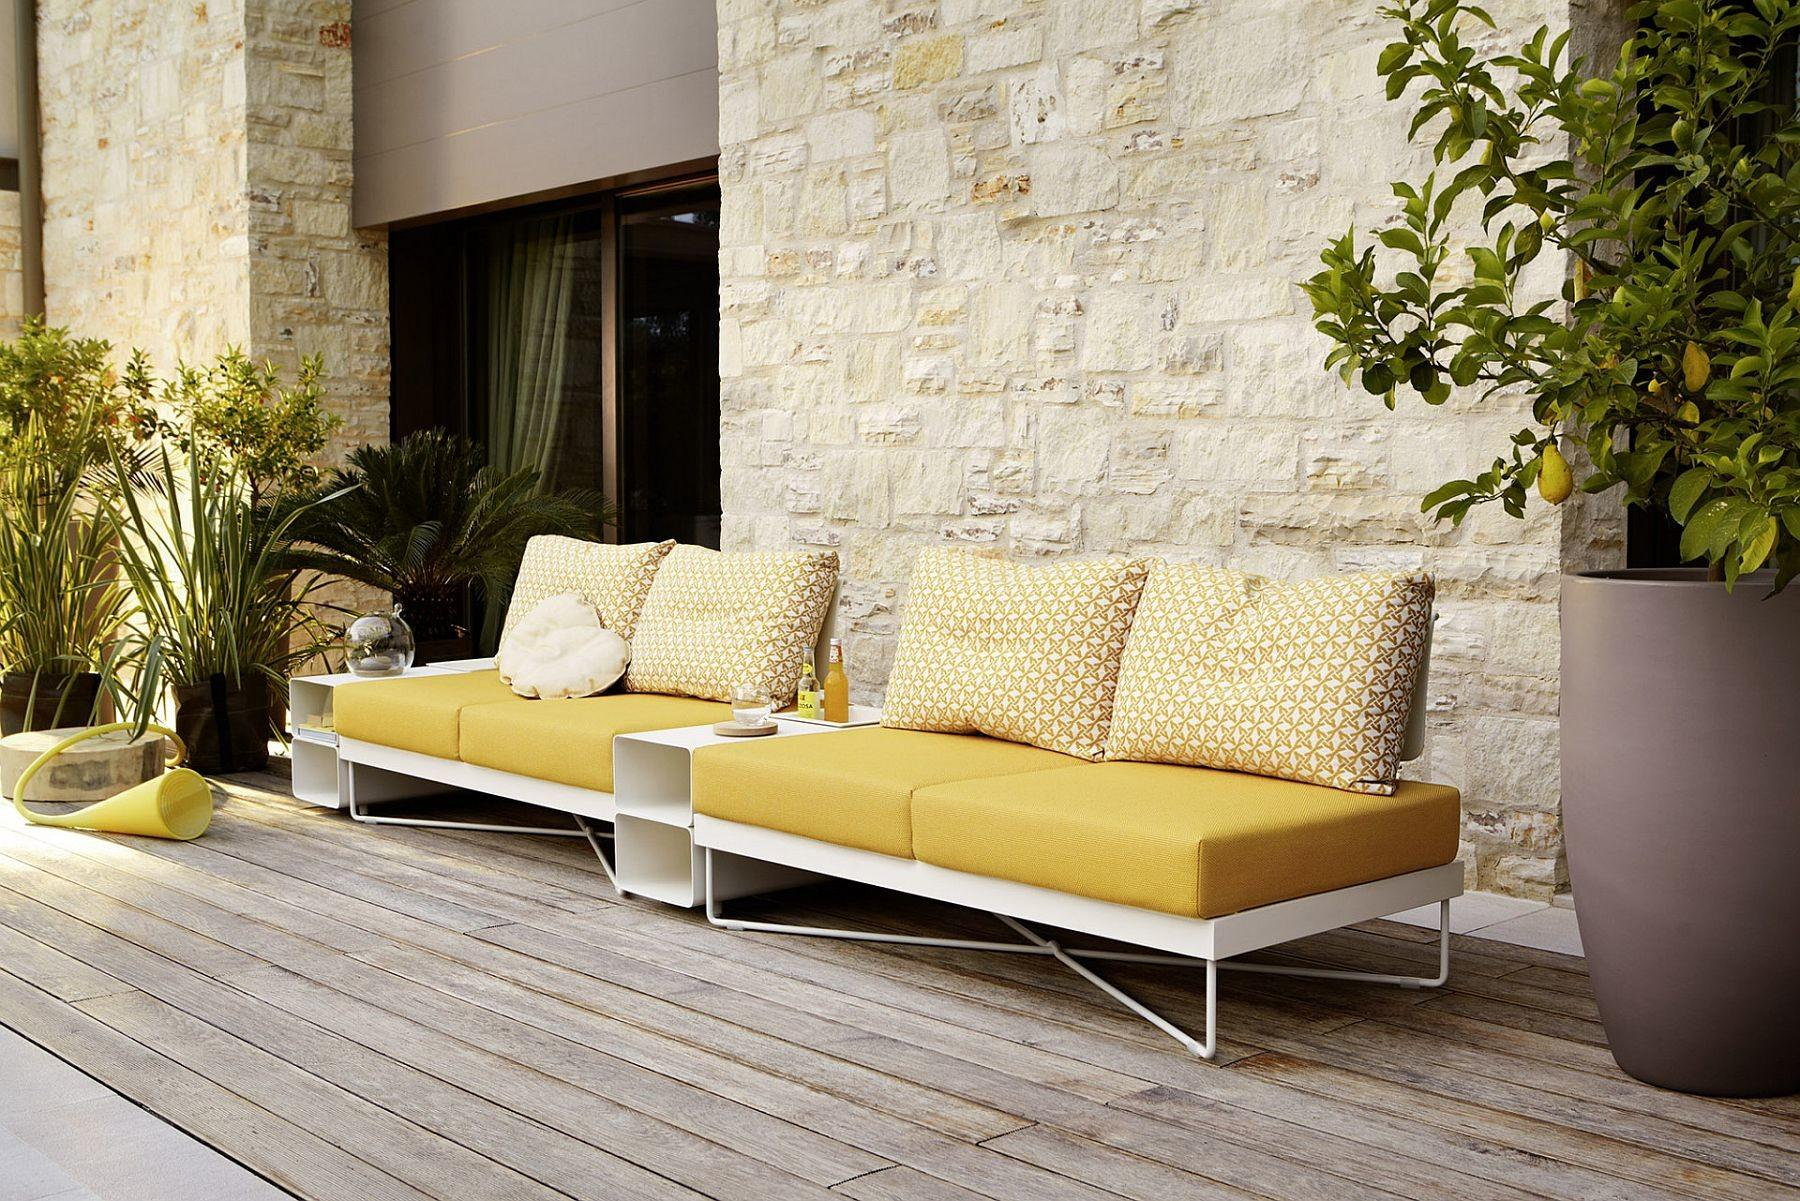 Minimal Sophisticated Outdoor Furniture Collection